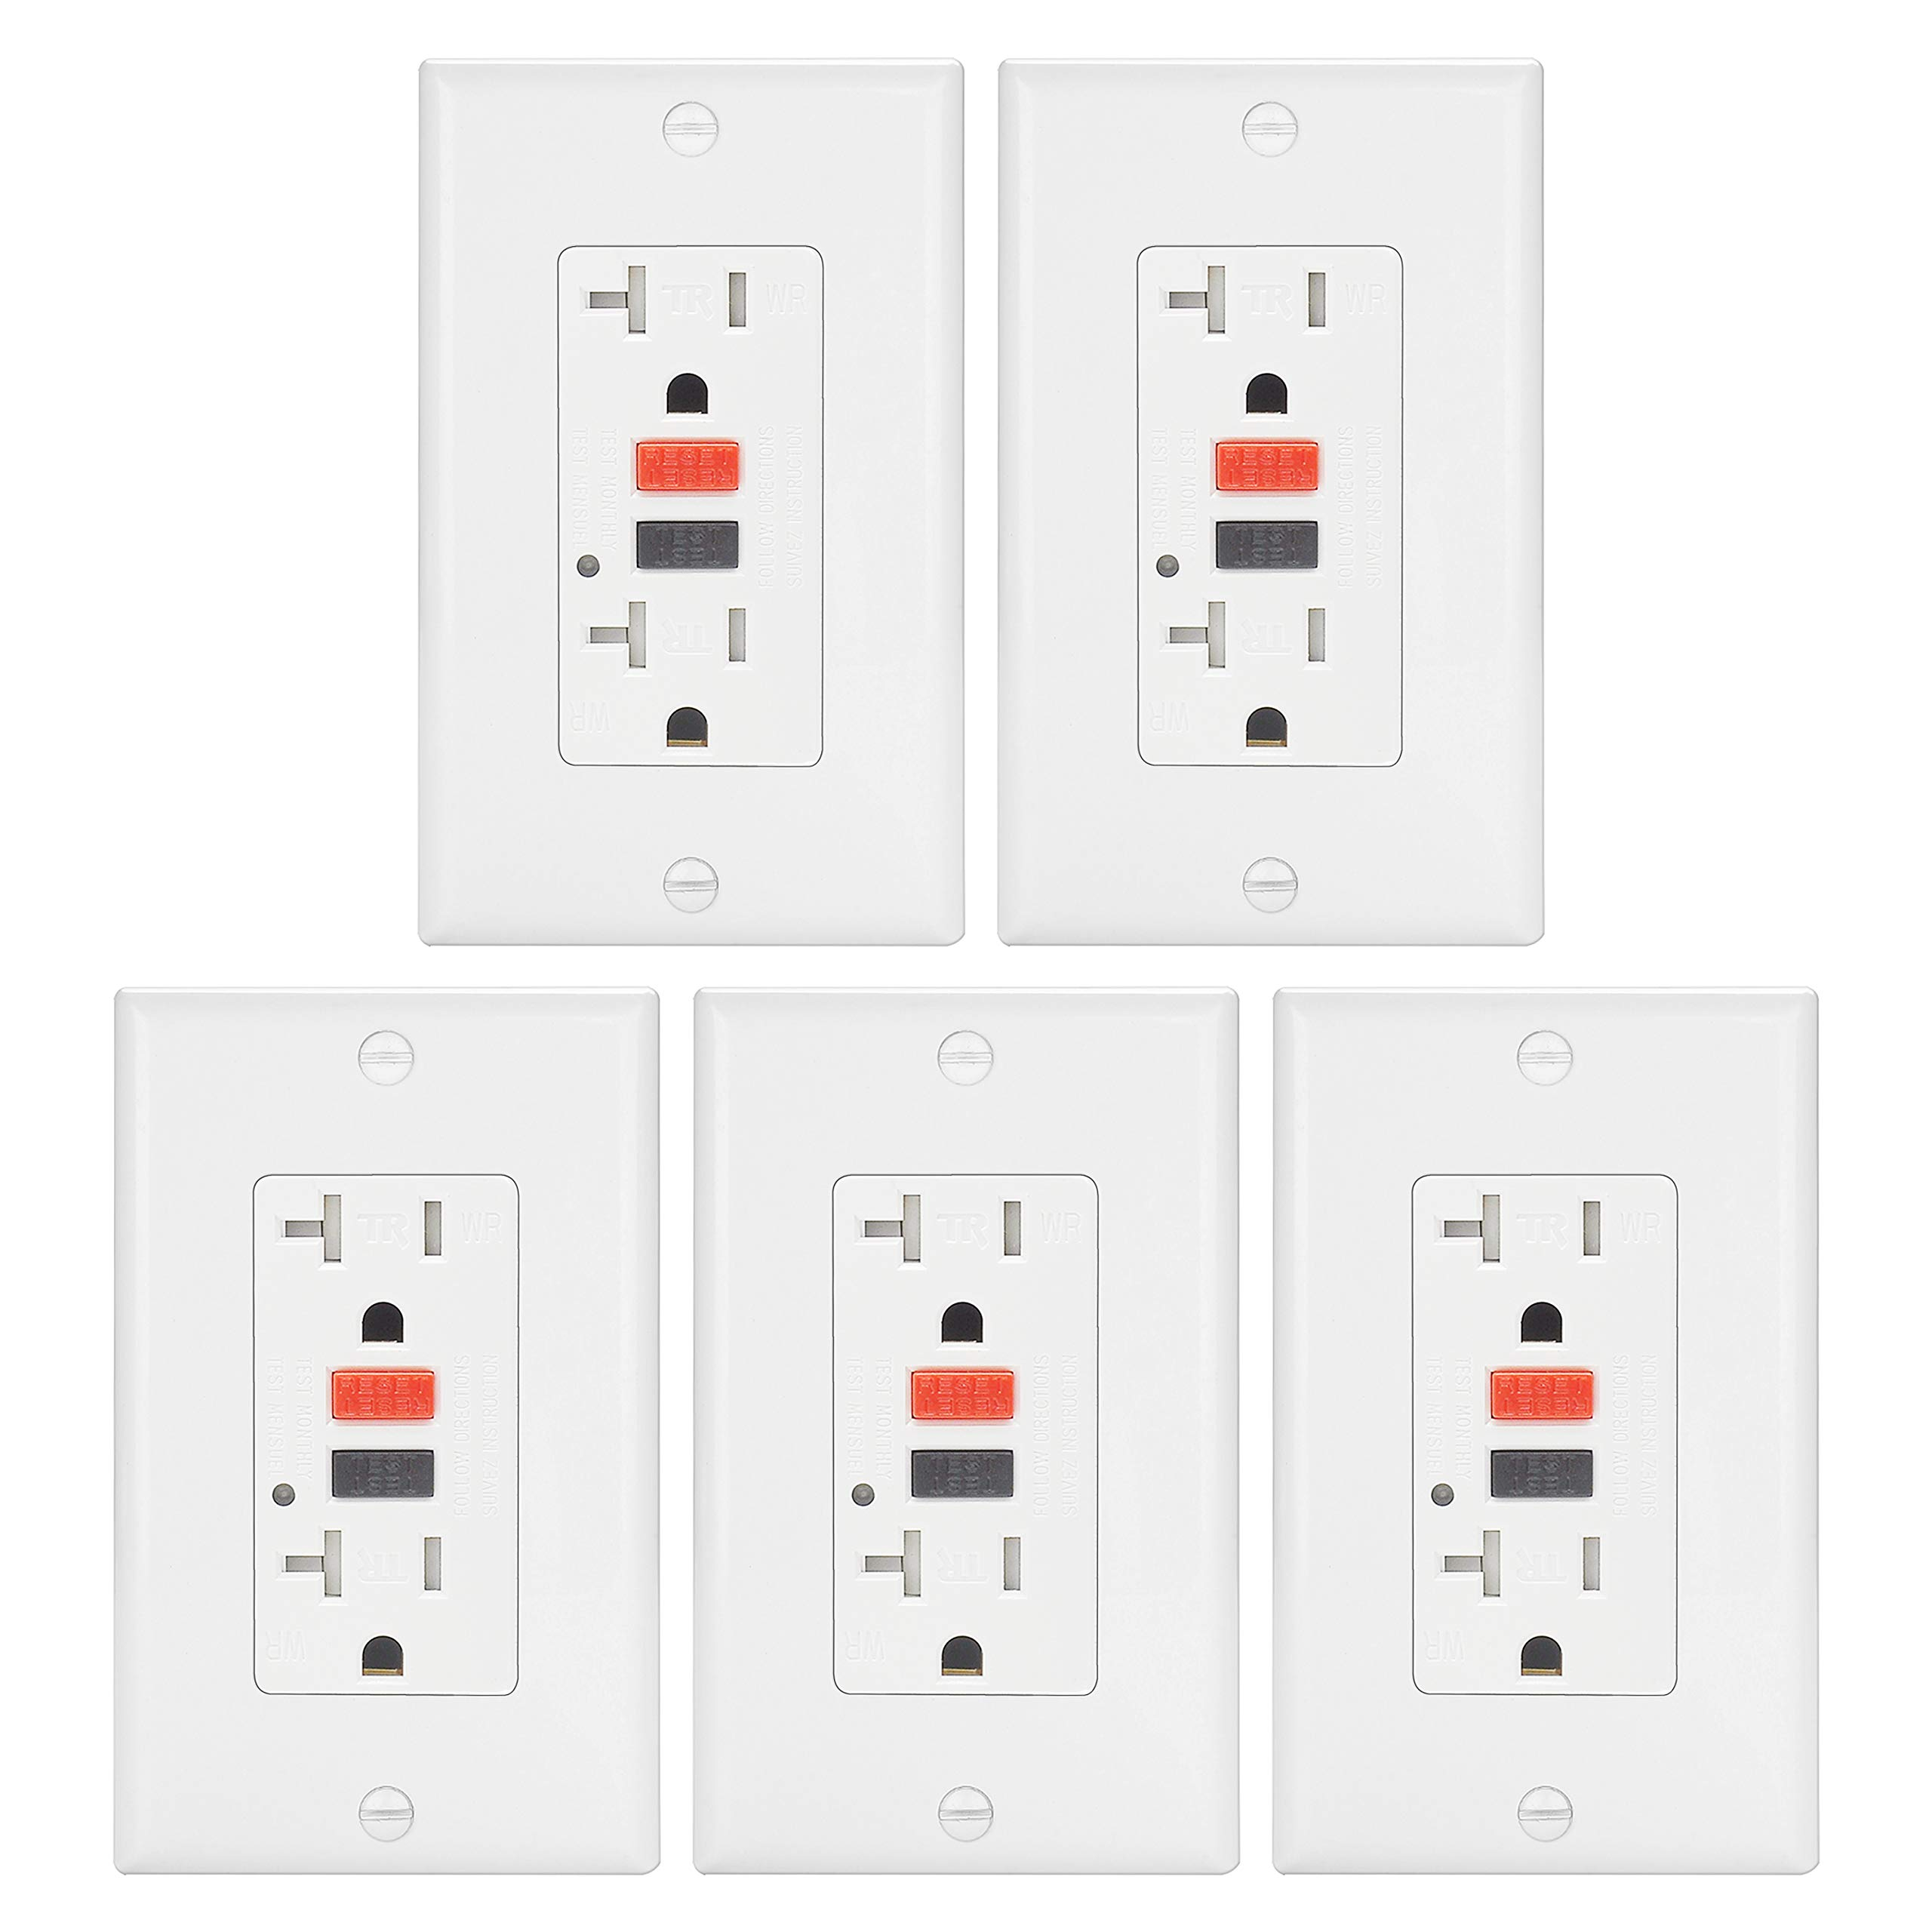 ELECTECK 20A WR GFCI Outlet, TR GFI Receptacle with LED Indicator, Weather and Tamper Resistant, Decorator Wall Plate Included, Residential and Commercial, ETL Certified, White, Pack of 5